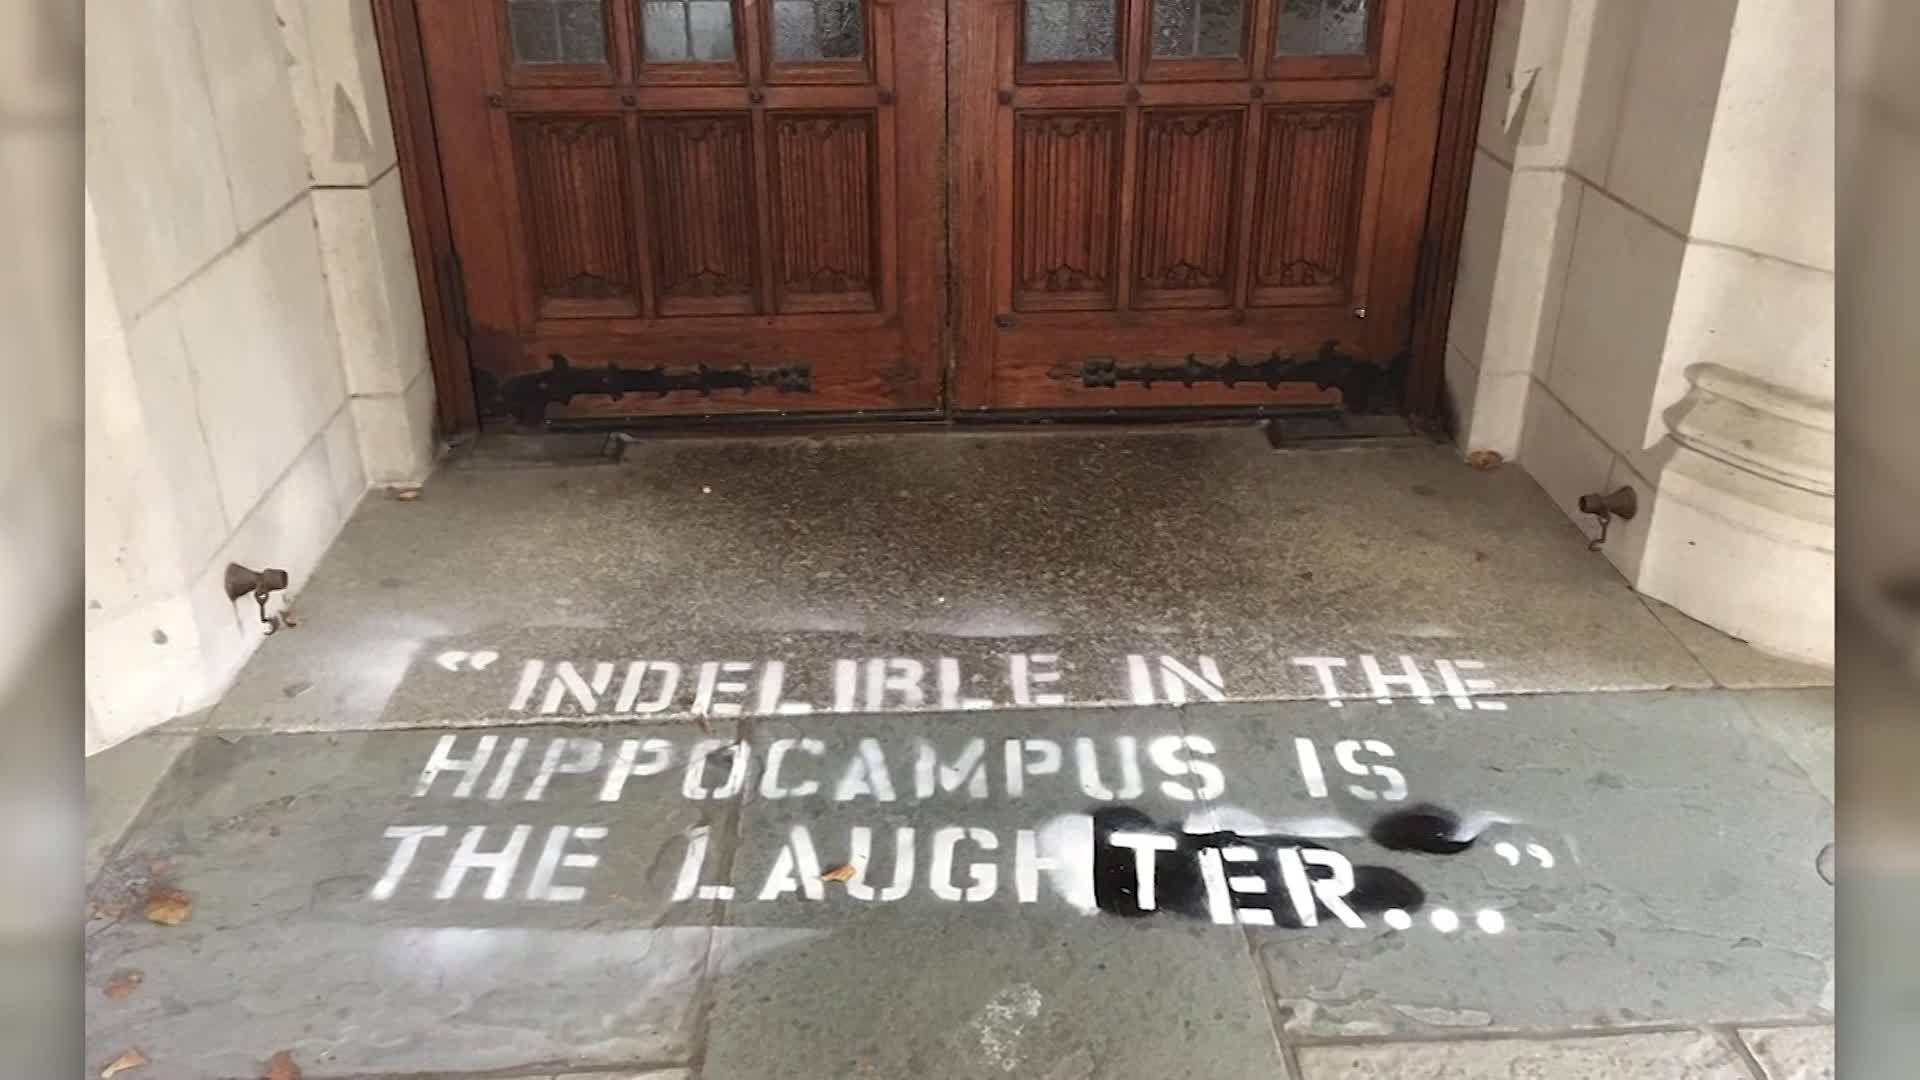 Ford's testimony quote spray painted on Yale Campus